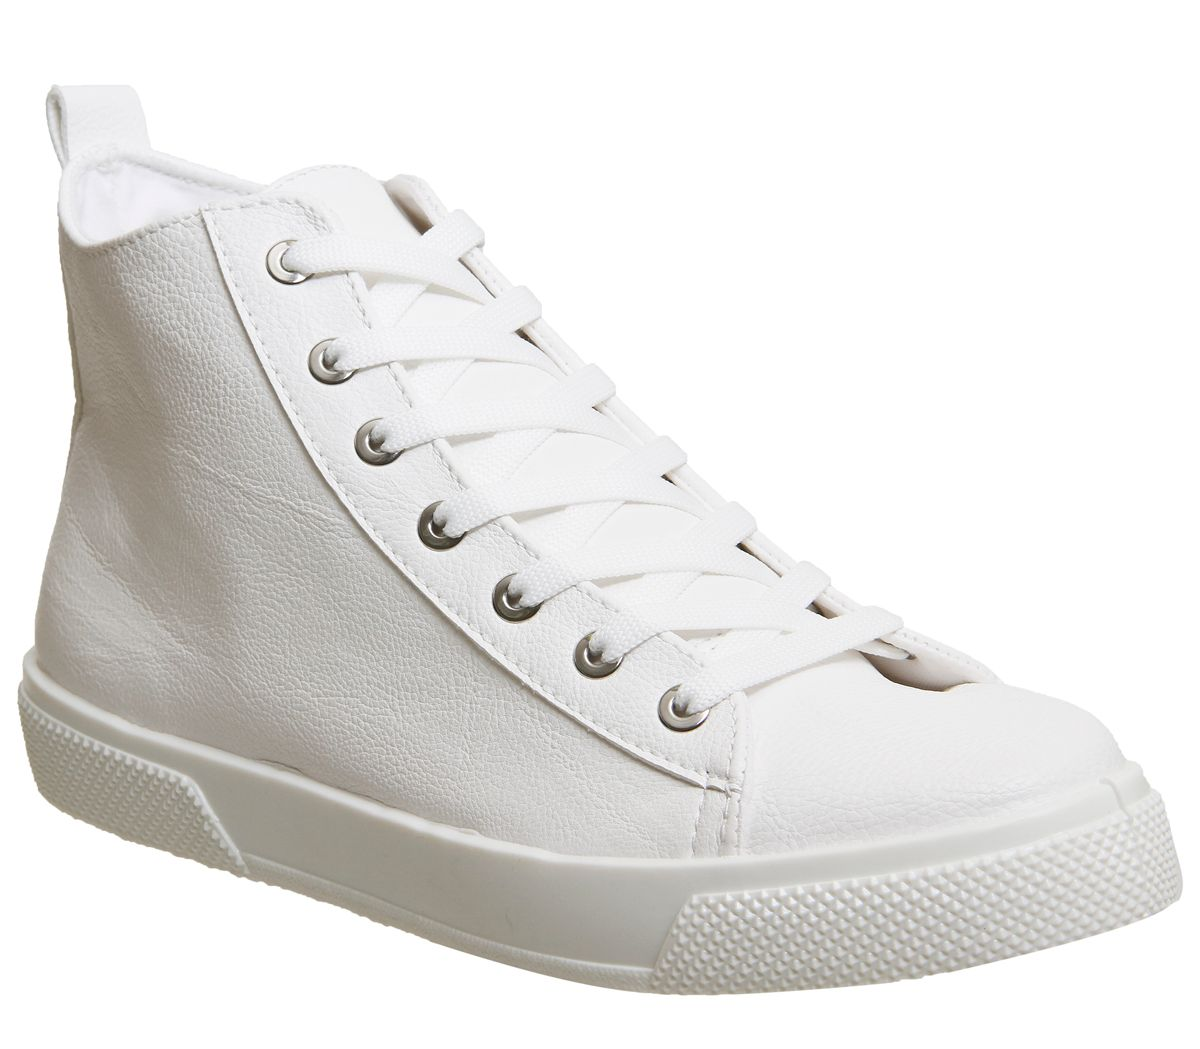 Office Freeze High Top Trainers, White